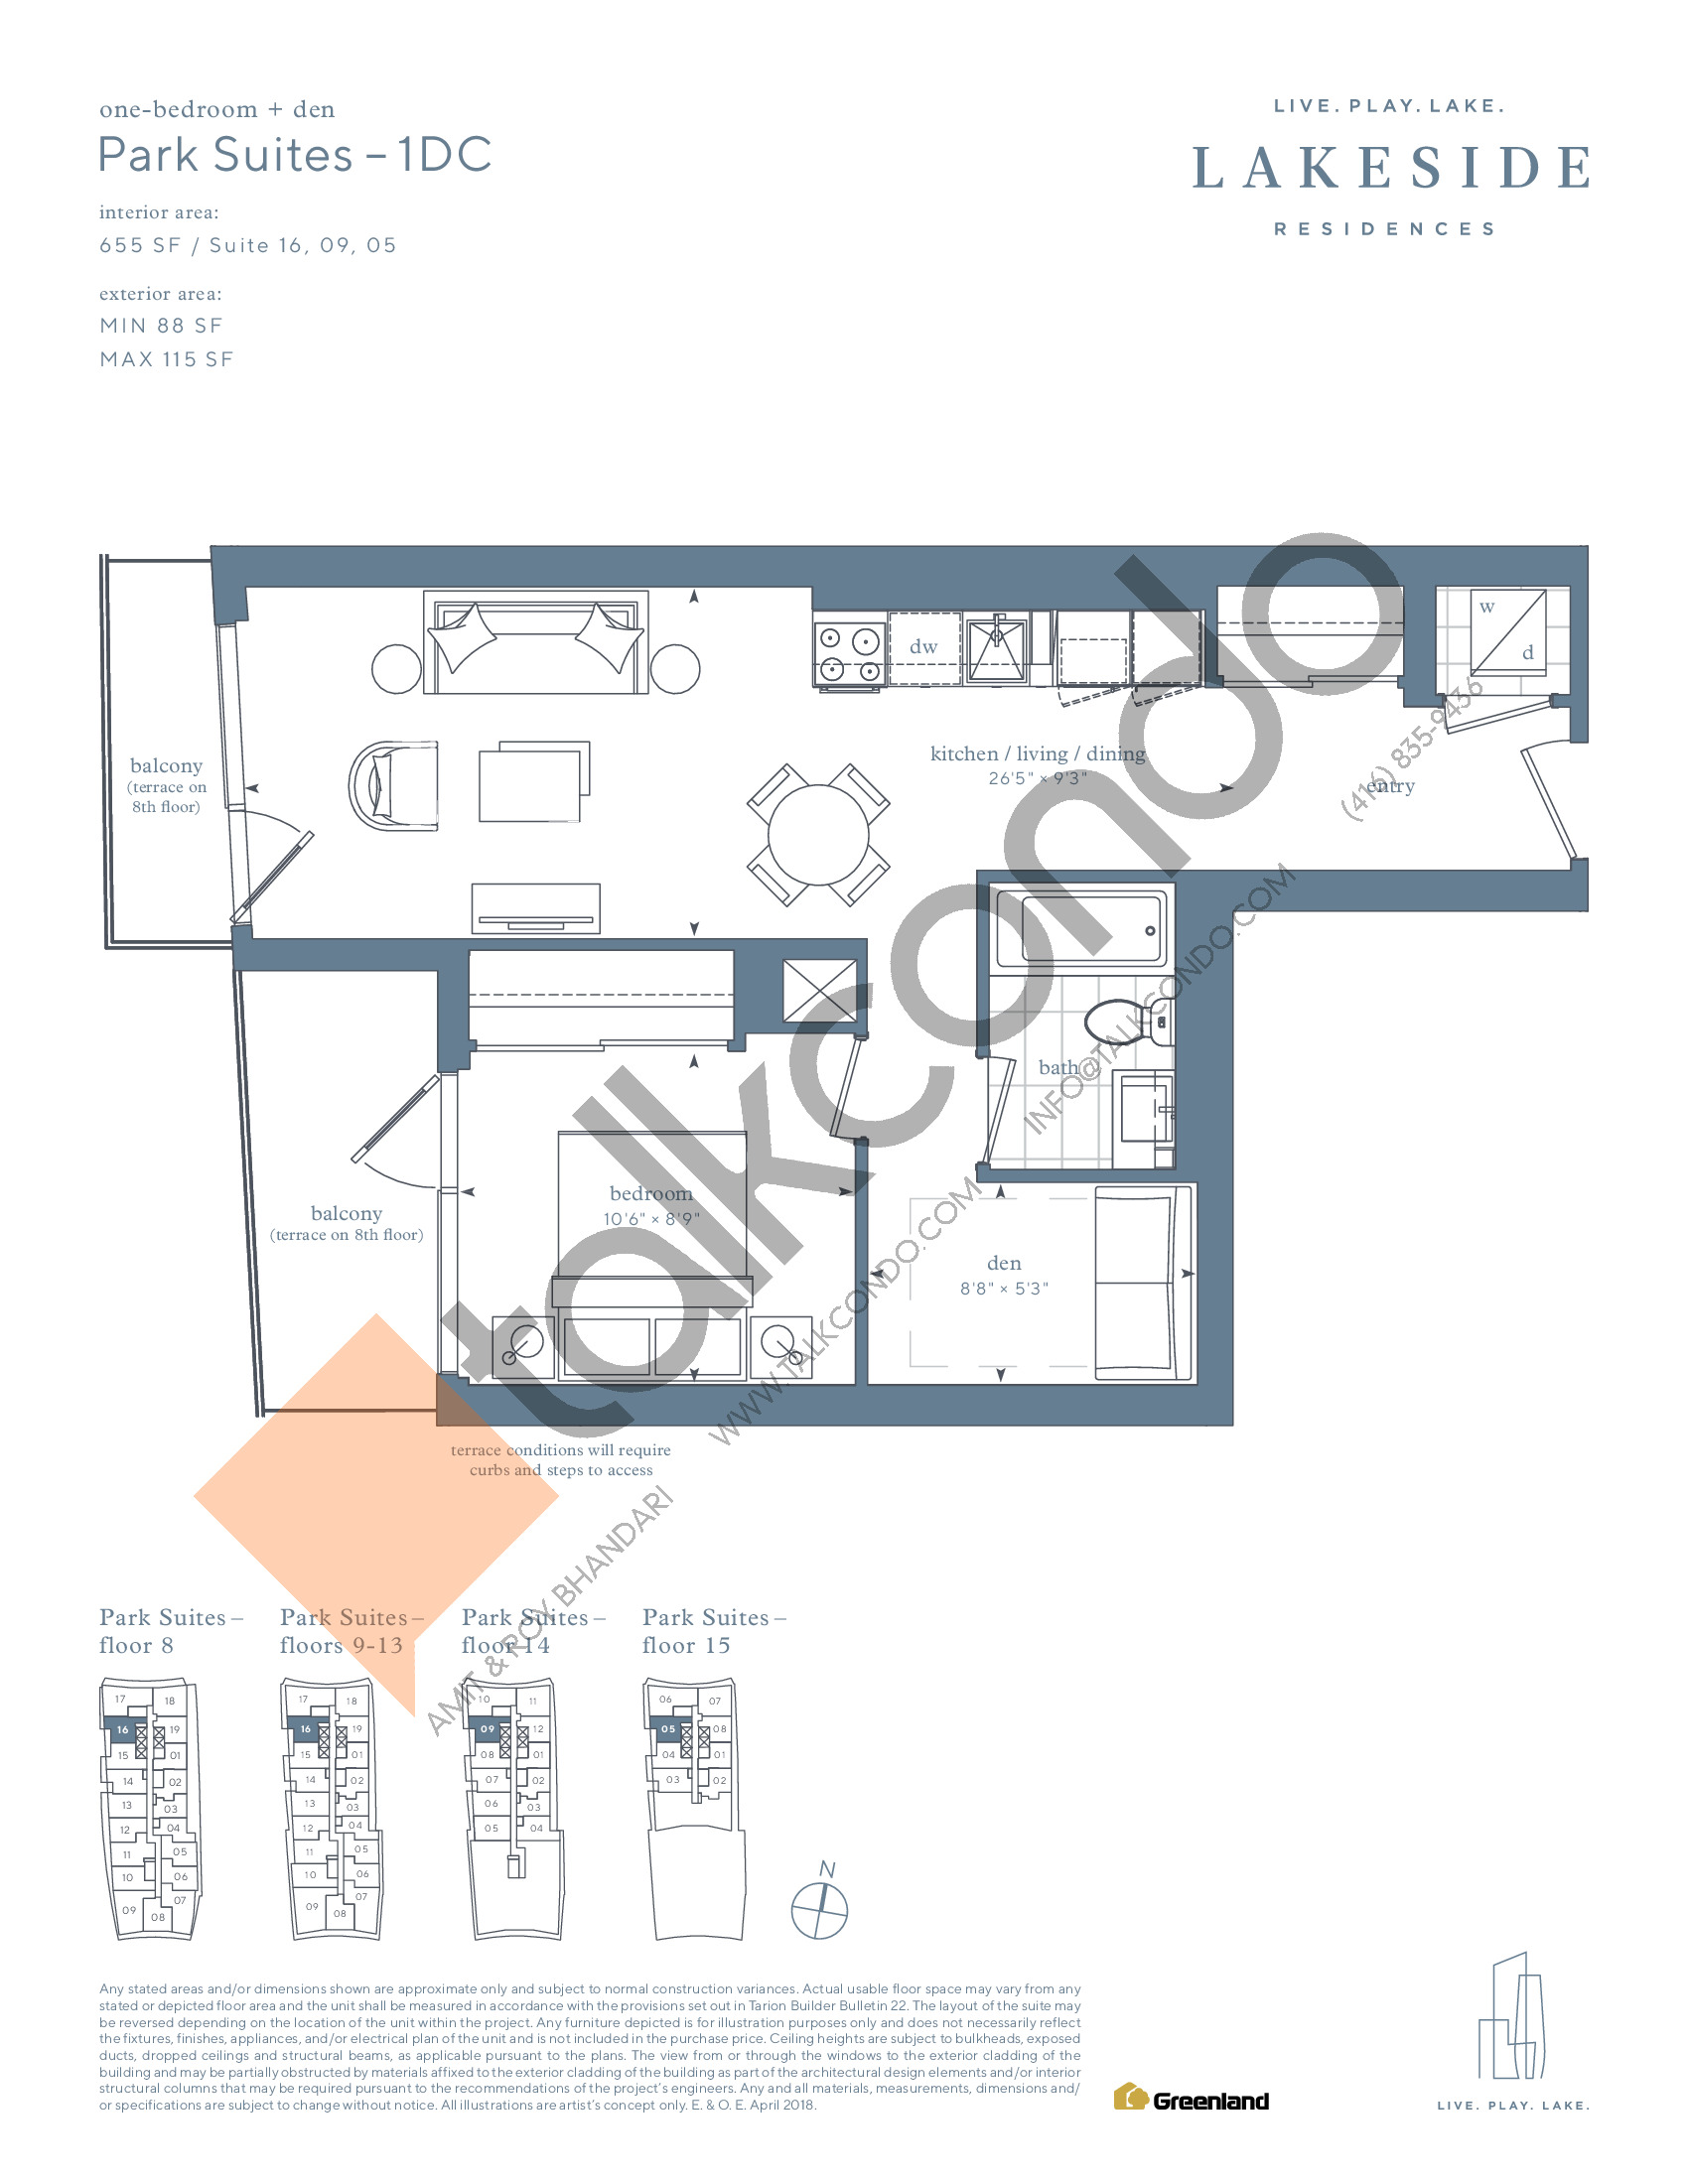 Park Suites - 1DC Floor Plan at Lakeside Residences - 655 sq.ft